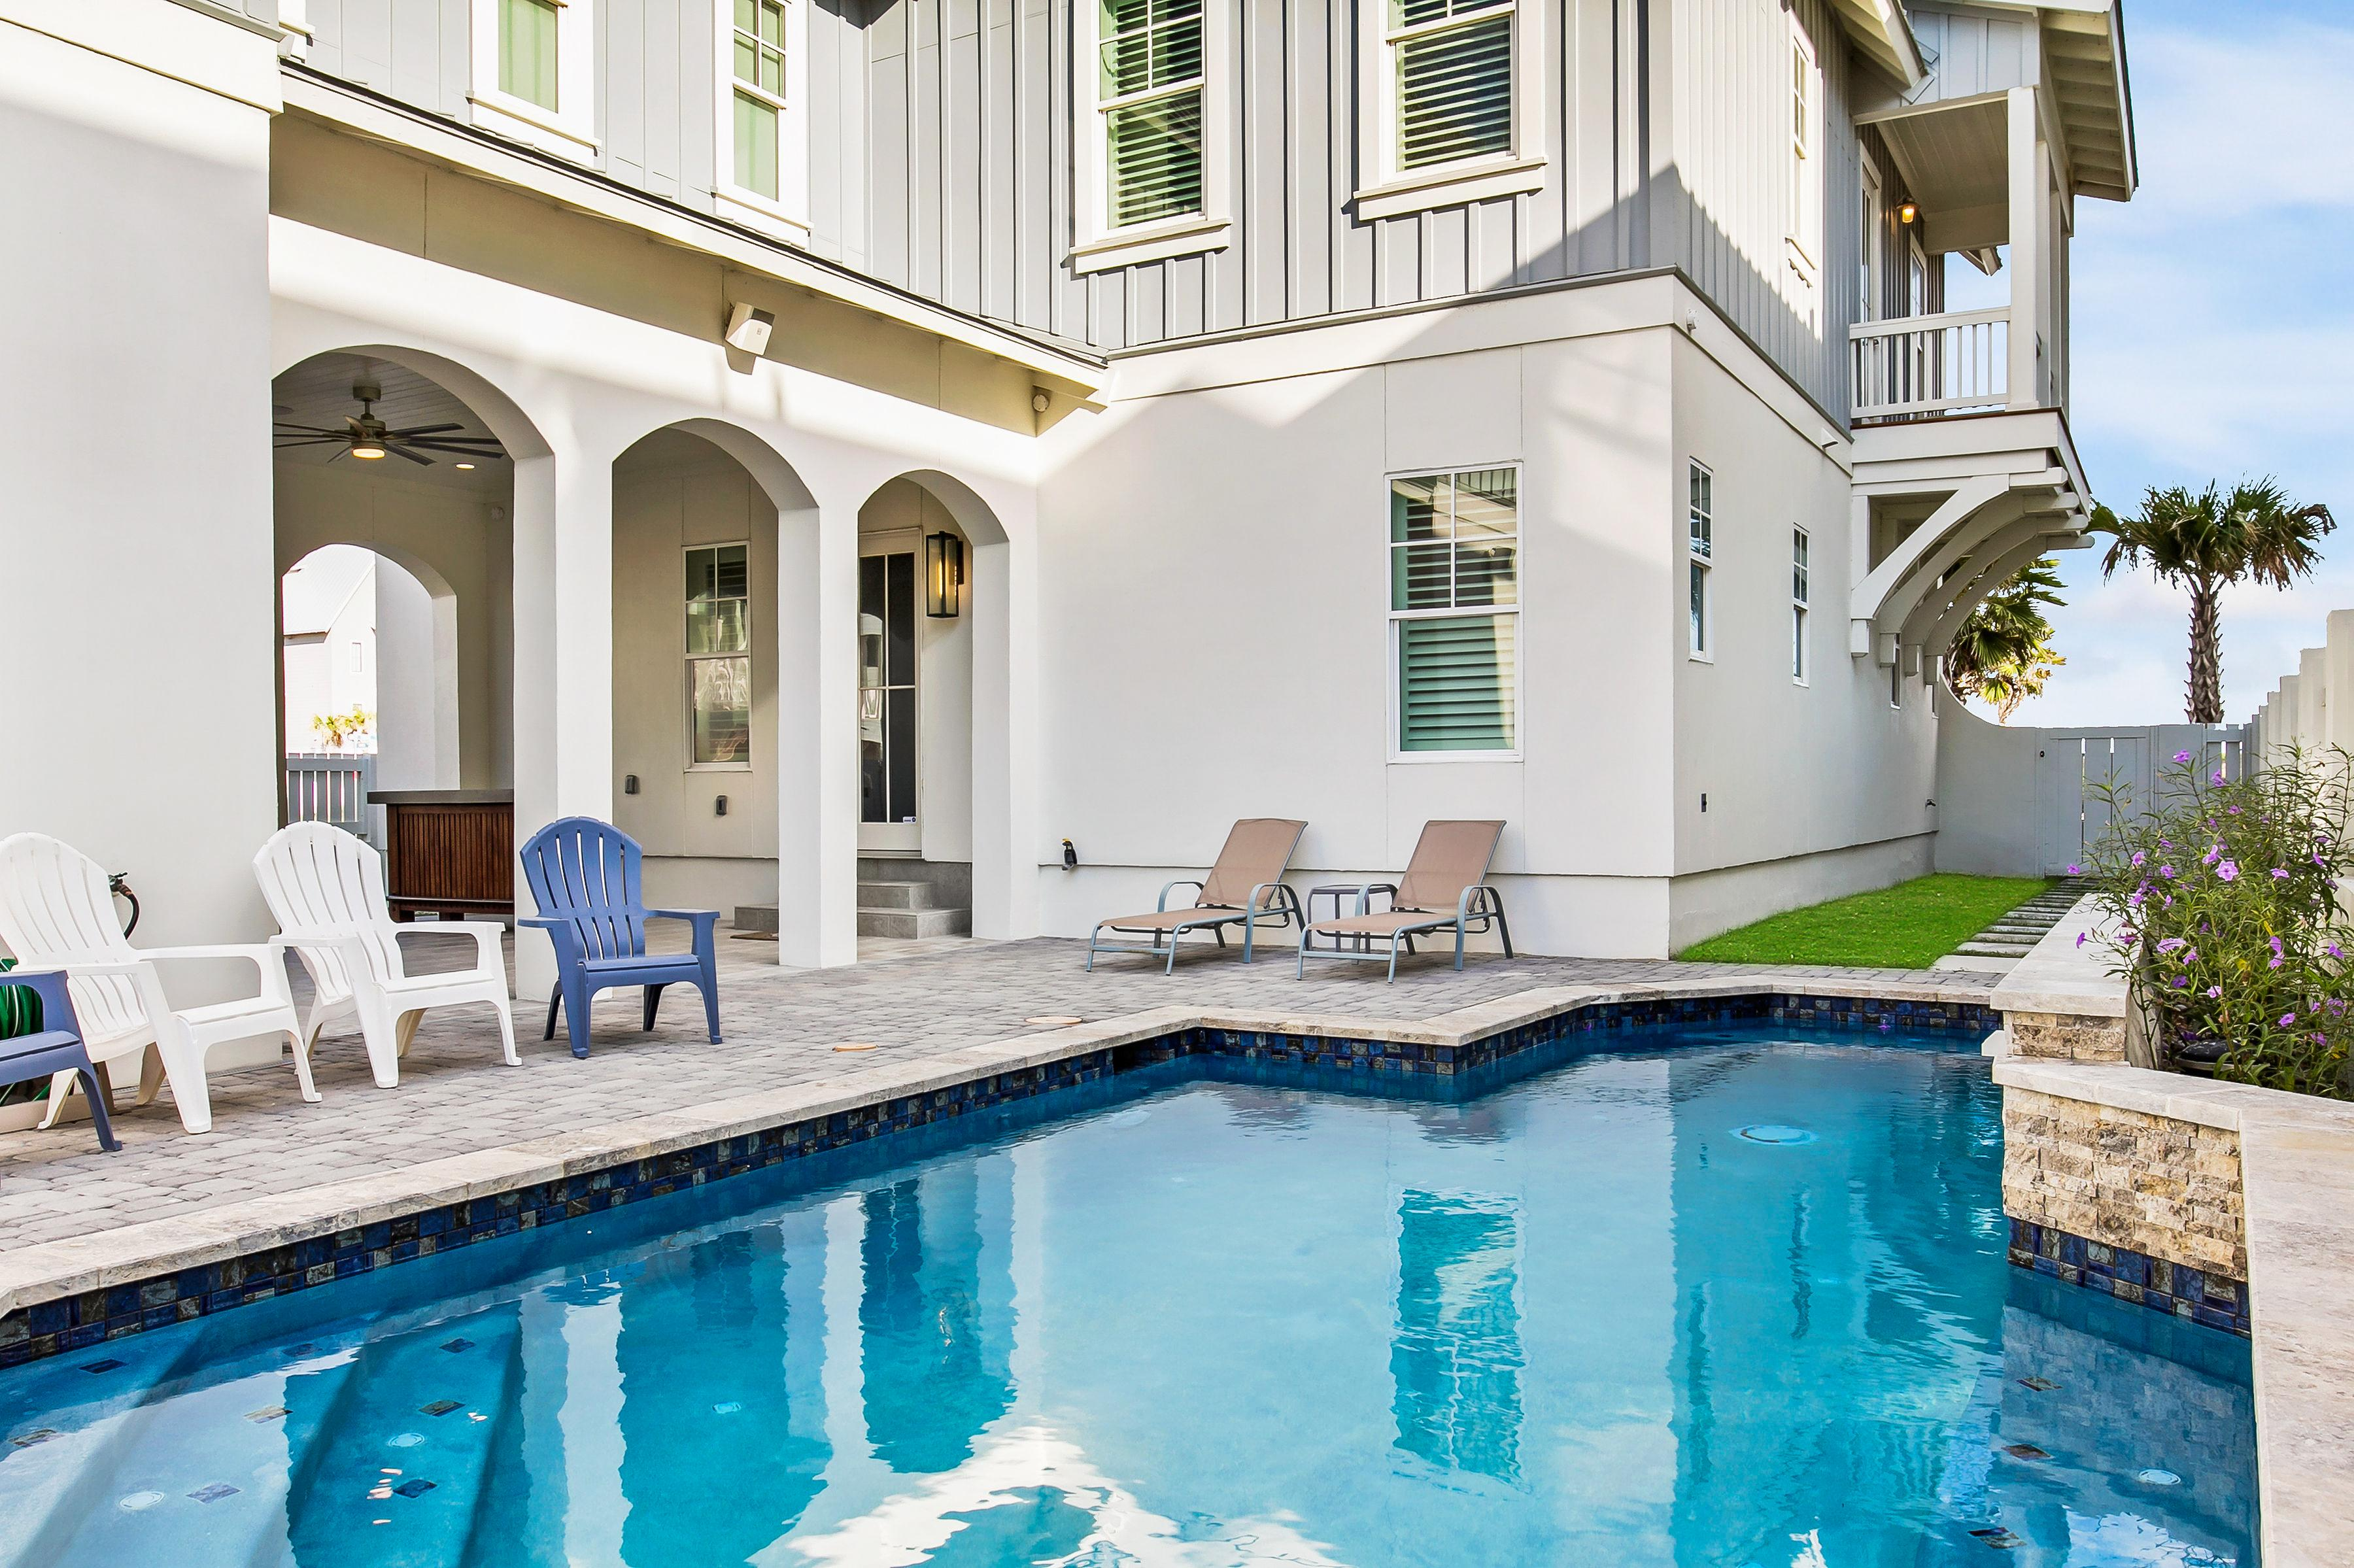 Property Image 2 - Elegant Beach Home with Pool